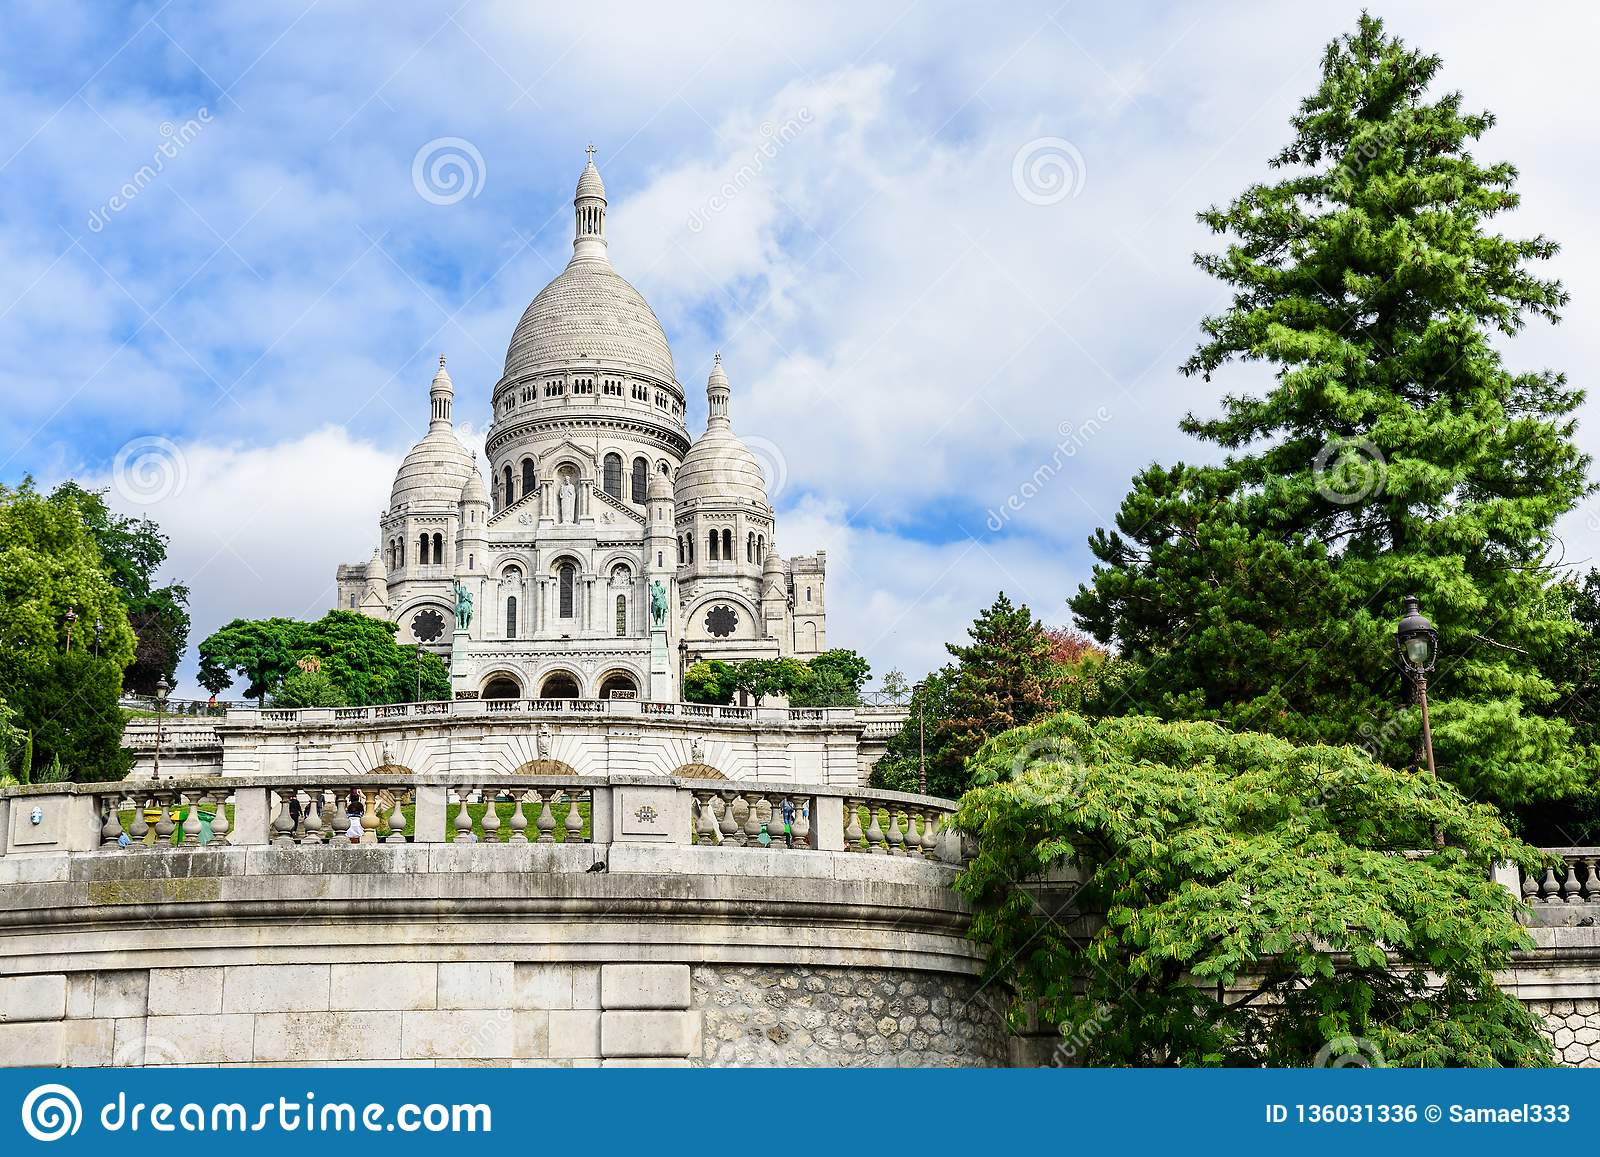 Basilica Sacre Coeur in Montmartre in Paris, France